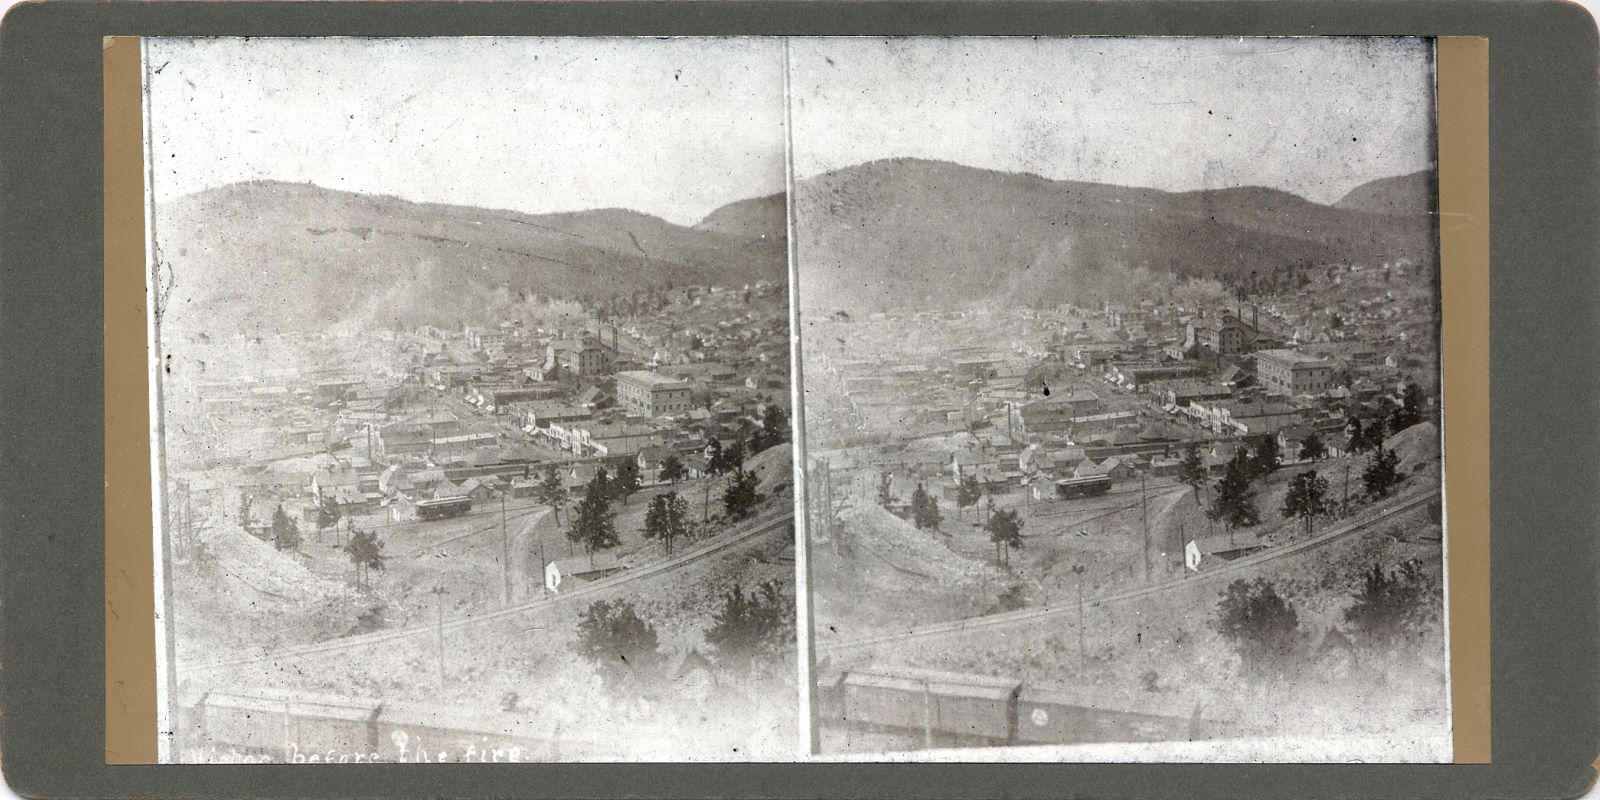 Sadly, this image has seen way better days, and what is presented here is the best I could get out of the very faded view of Victor, photographed sometime before the 1899 fire that wrecked the town. As there is a Trolley car about middle of view from side to side and about 1/3 up from bottom, this view is most likely from 1898 or no later than 1899, as while the trolley line had its grade done to Victor, inclusive rails & catenary by December 1, 1897, regular service was not started before January 3, 1898. The railroad in the foreground is the M.T. mainline with a string of boxcars set out on a siding, going towards the Monument mine, but not sure if it ever was connected to the mine. * The head frame seen on left-hand side, near bottom, is most likely the Dillon mine. * A little left of the trolley, and about the top of the headframe of the Dillon mine, is the Mary Cashen mine operation, see a quite a big hoist house with a large smokestack on the back of it, but sadly the quality is so bad it is hard to see any details.